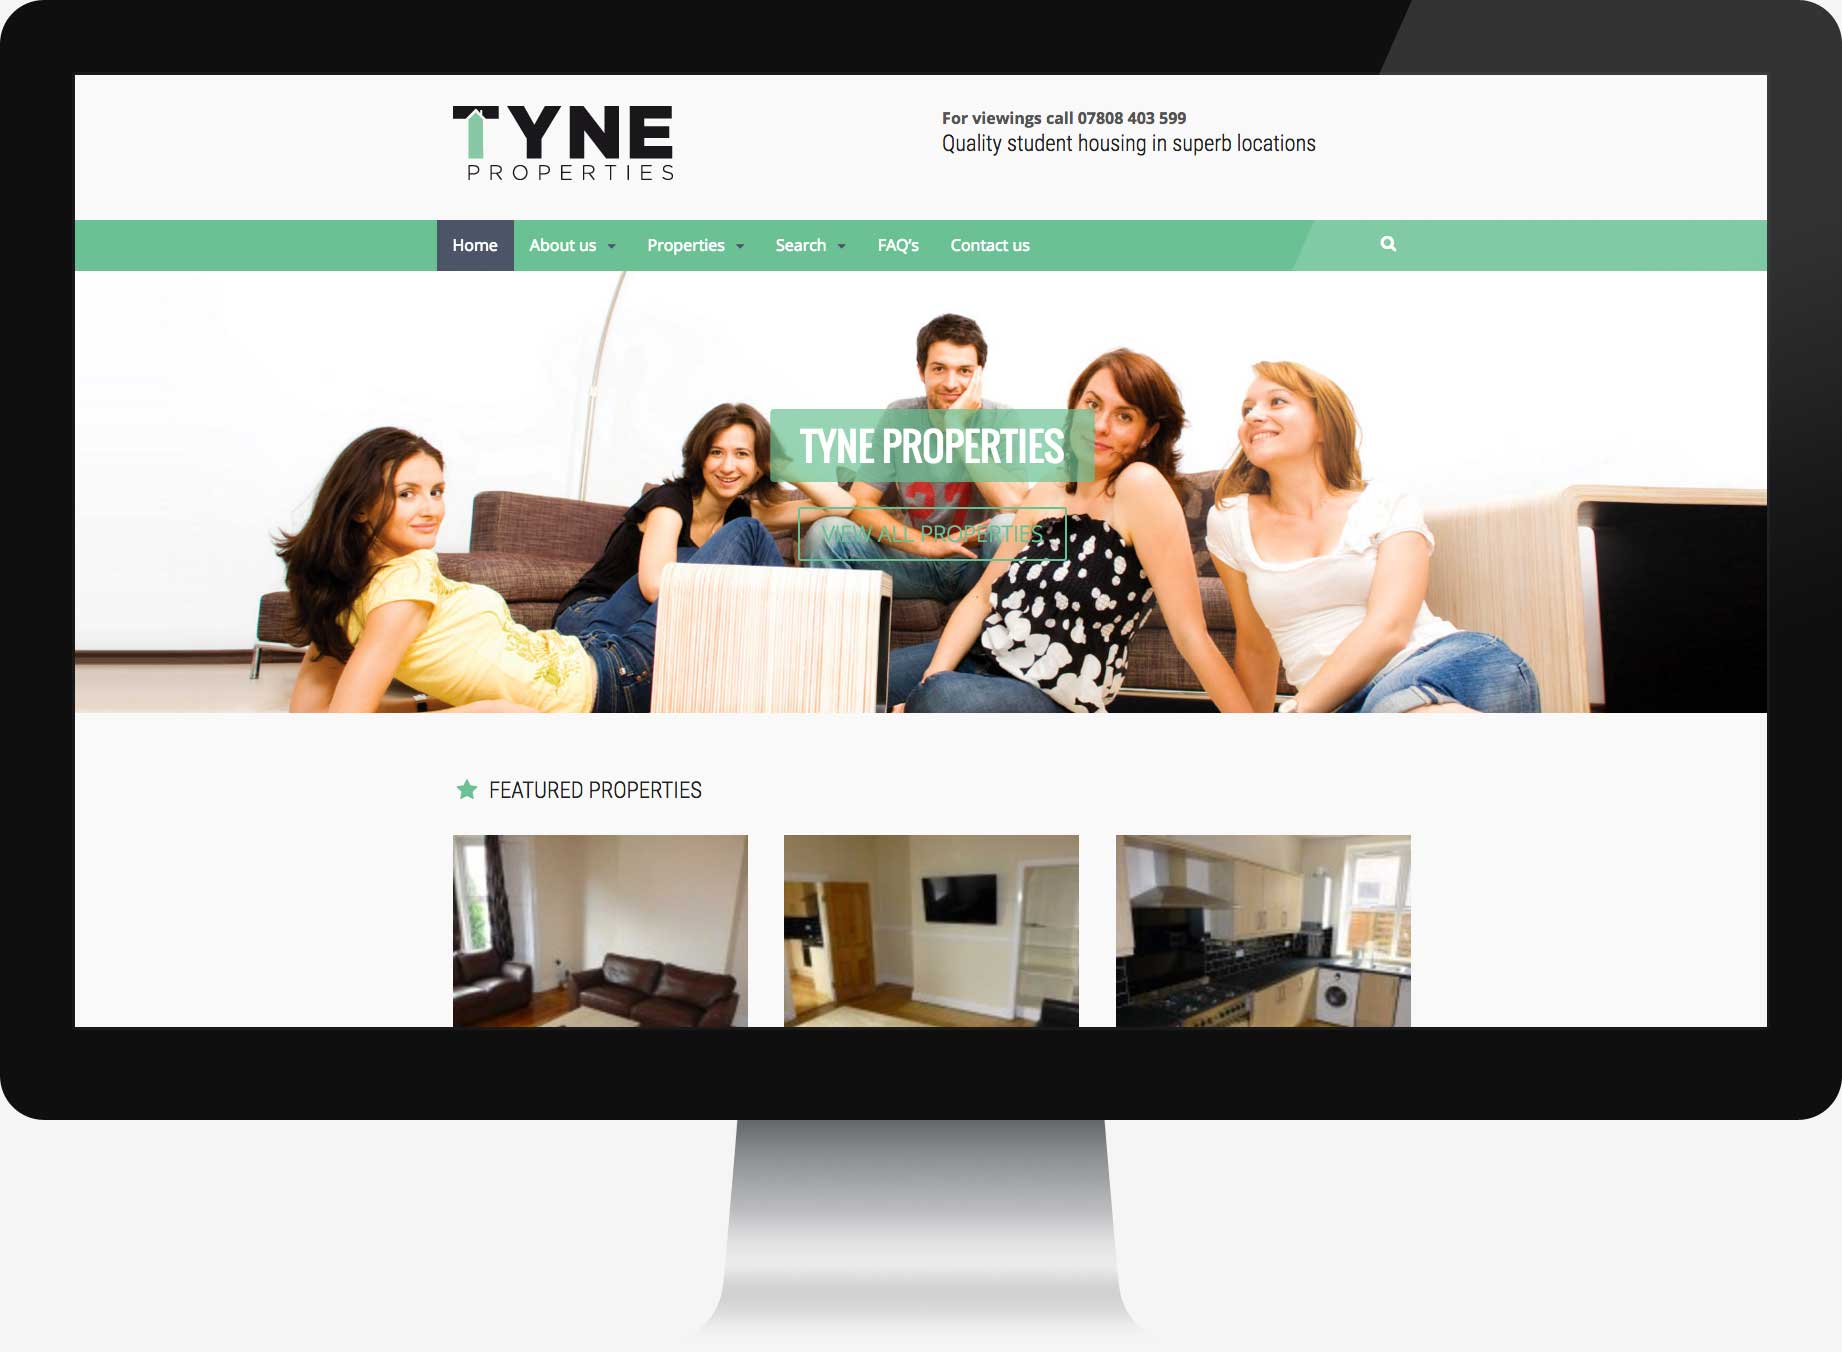 Homepage design for website